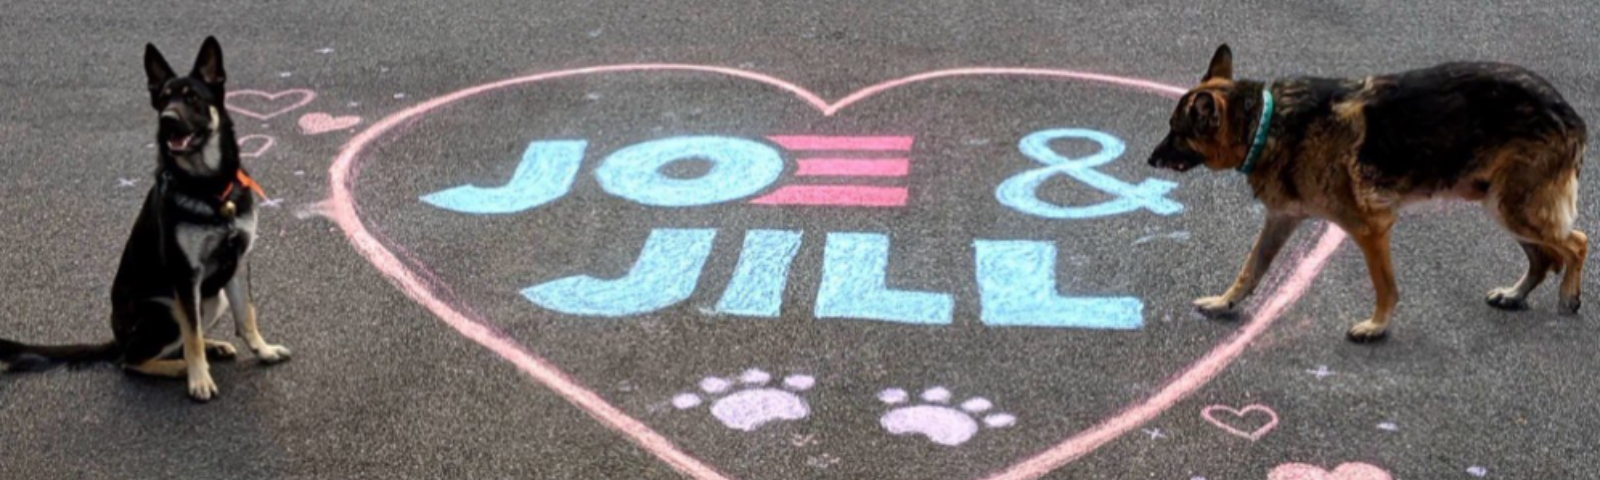 twitter header for Major and Champ, the new dogs in the whitehouse, a heart with joe and jill on it chalked on the ground